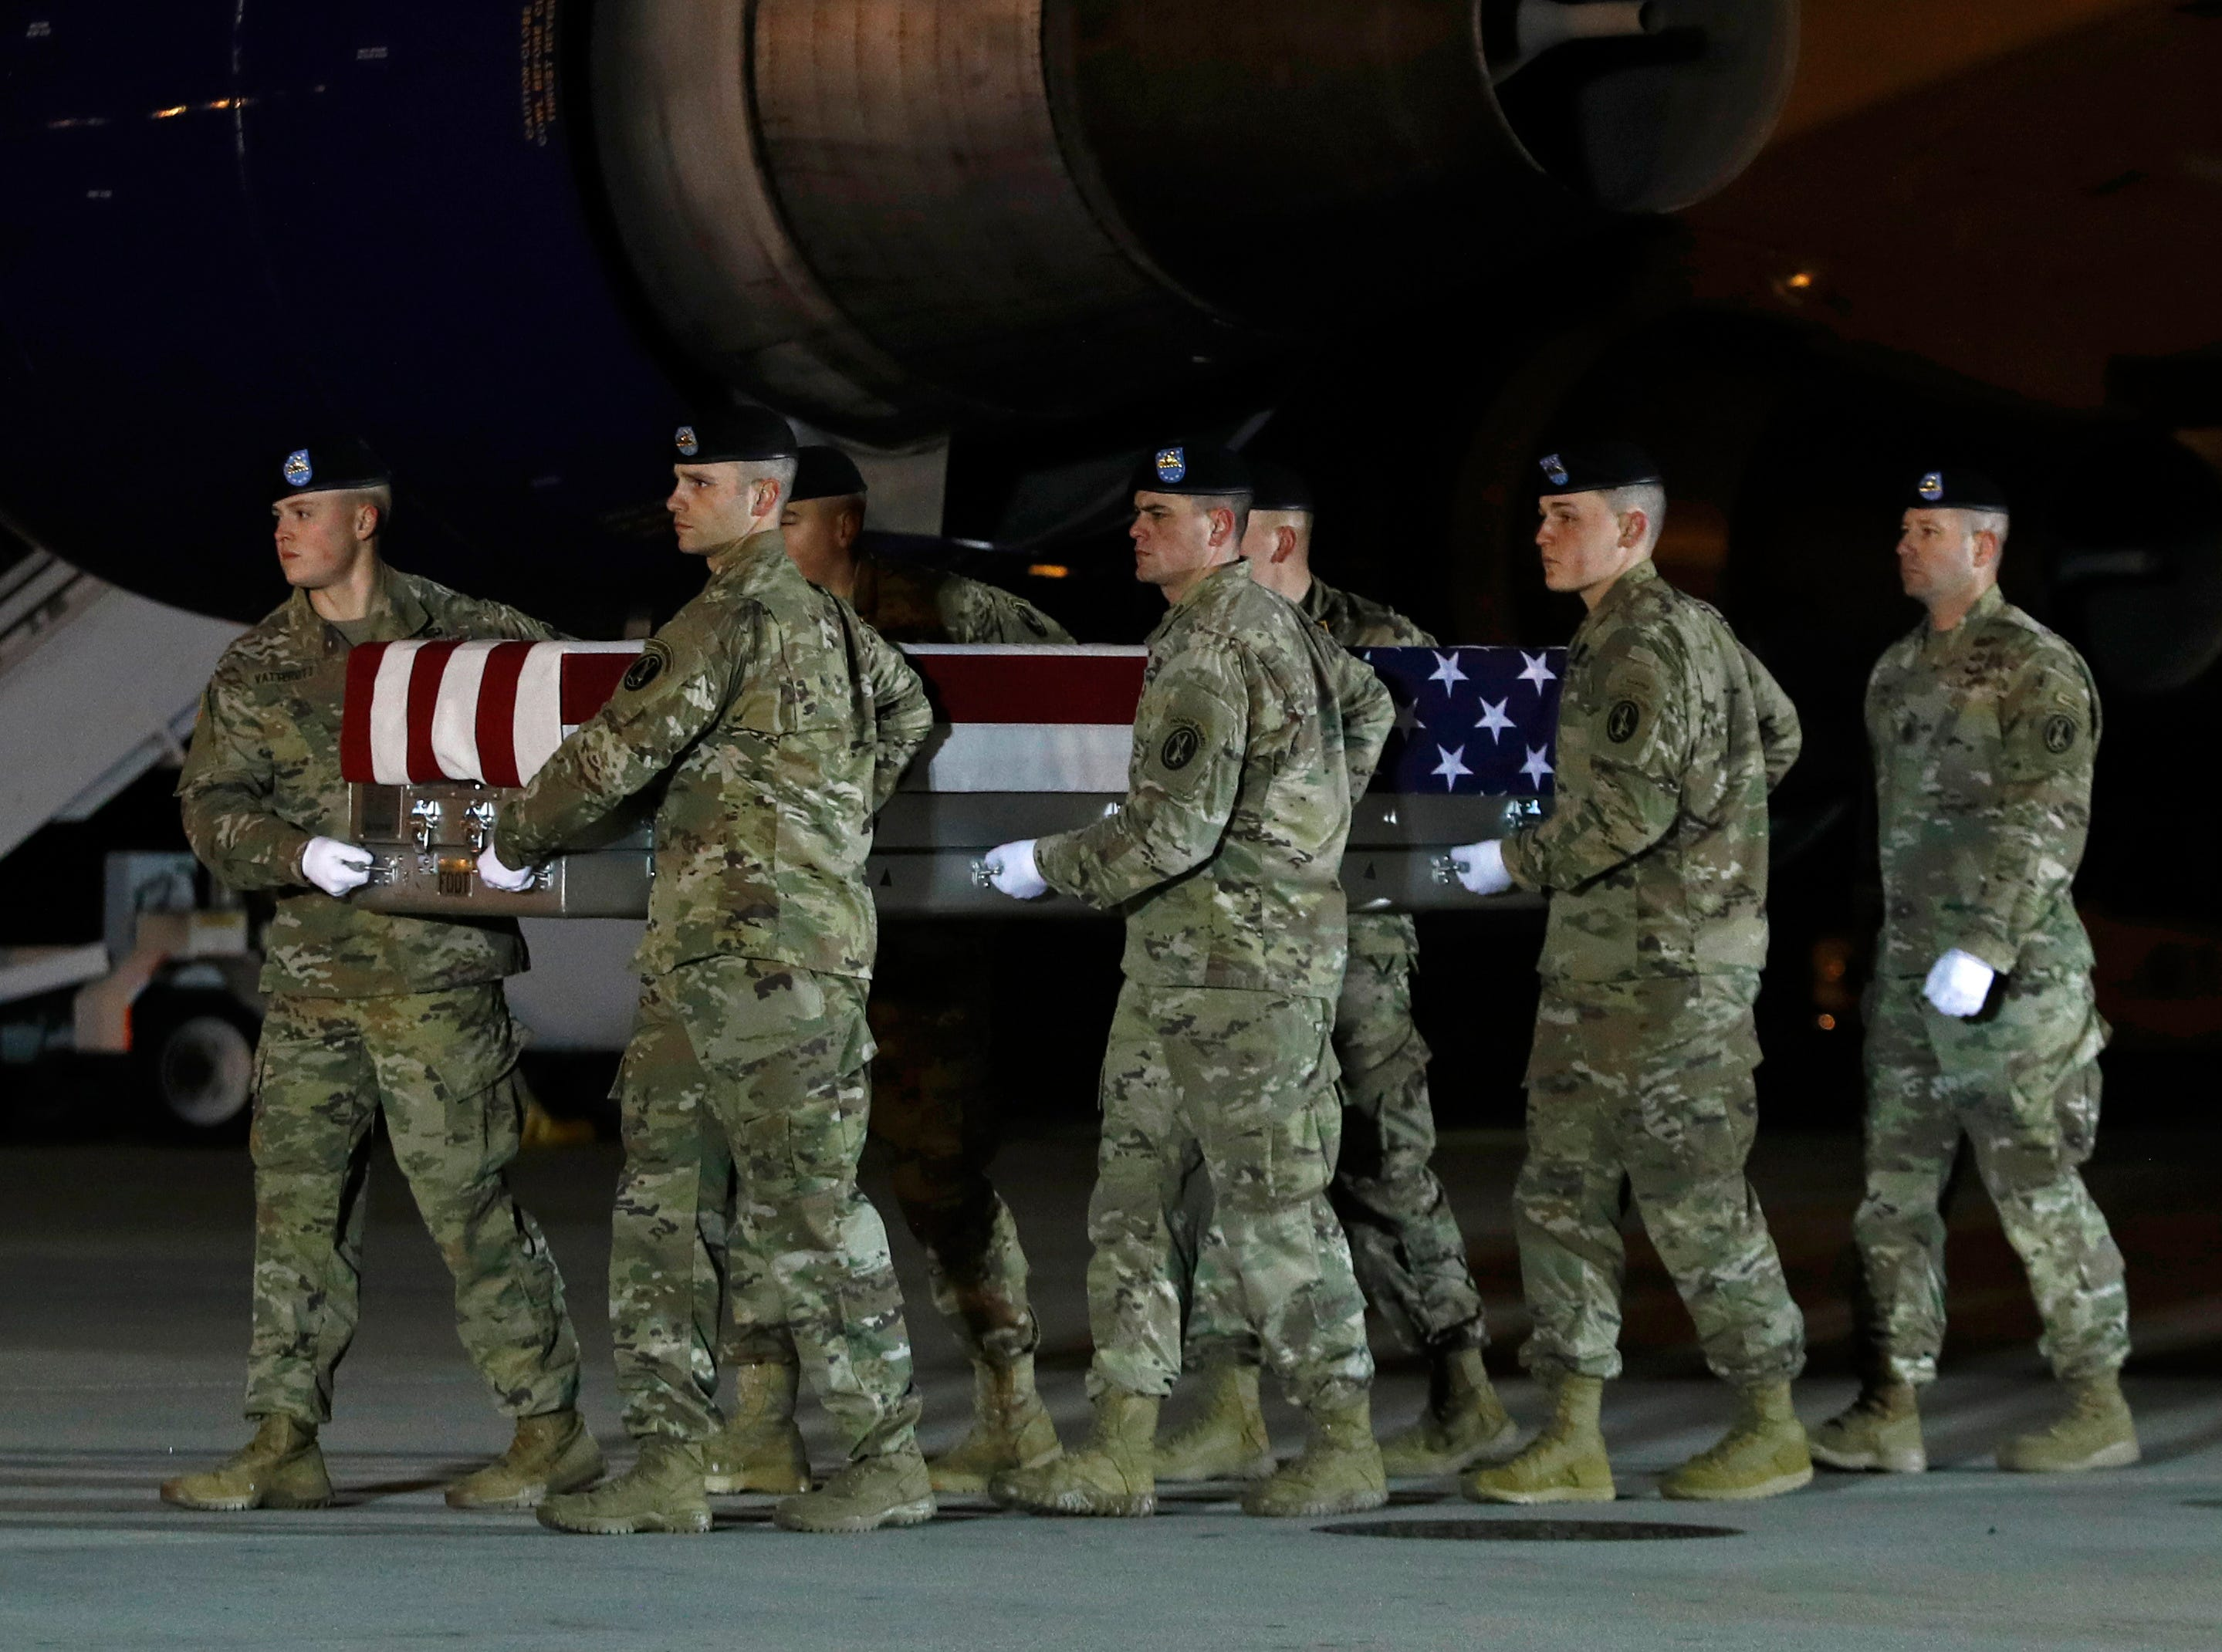 A U.S. Army carry team moves a transfer case containing the remains of Capt. Andrew P. Ross, Friday, Nov. 30, 2018, at Dover Air Force Base, Del. According to the Department of Defense, Ross, 29, of Lexington, Va., was killed Nov. 27, 2018, by a roadside bomb in Ghazni province, Afghanistan.